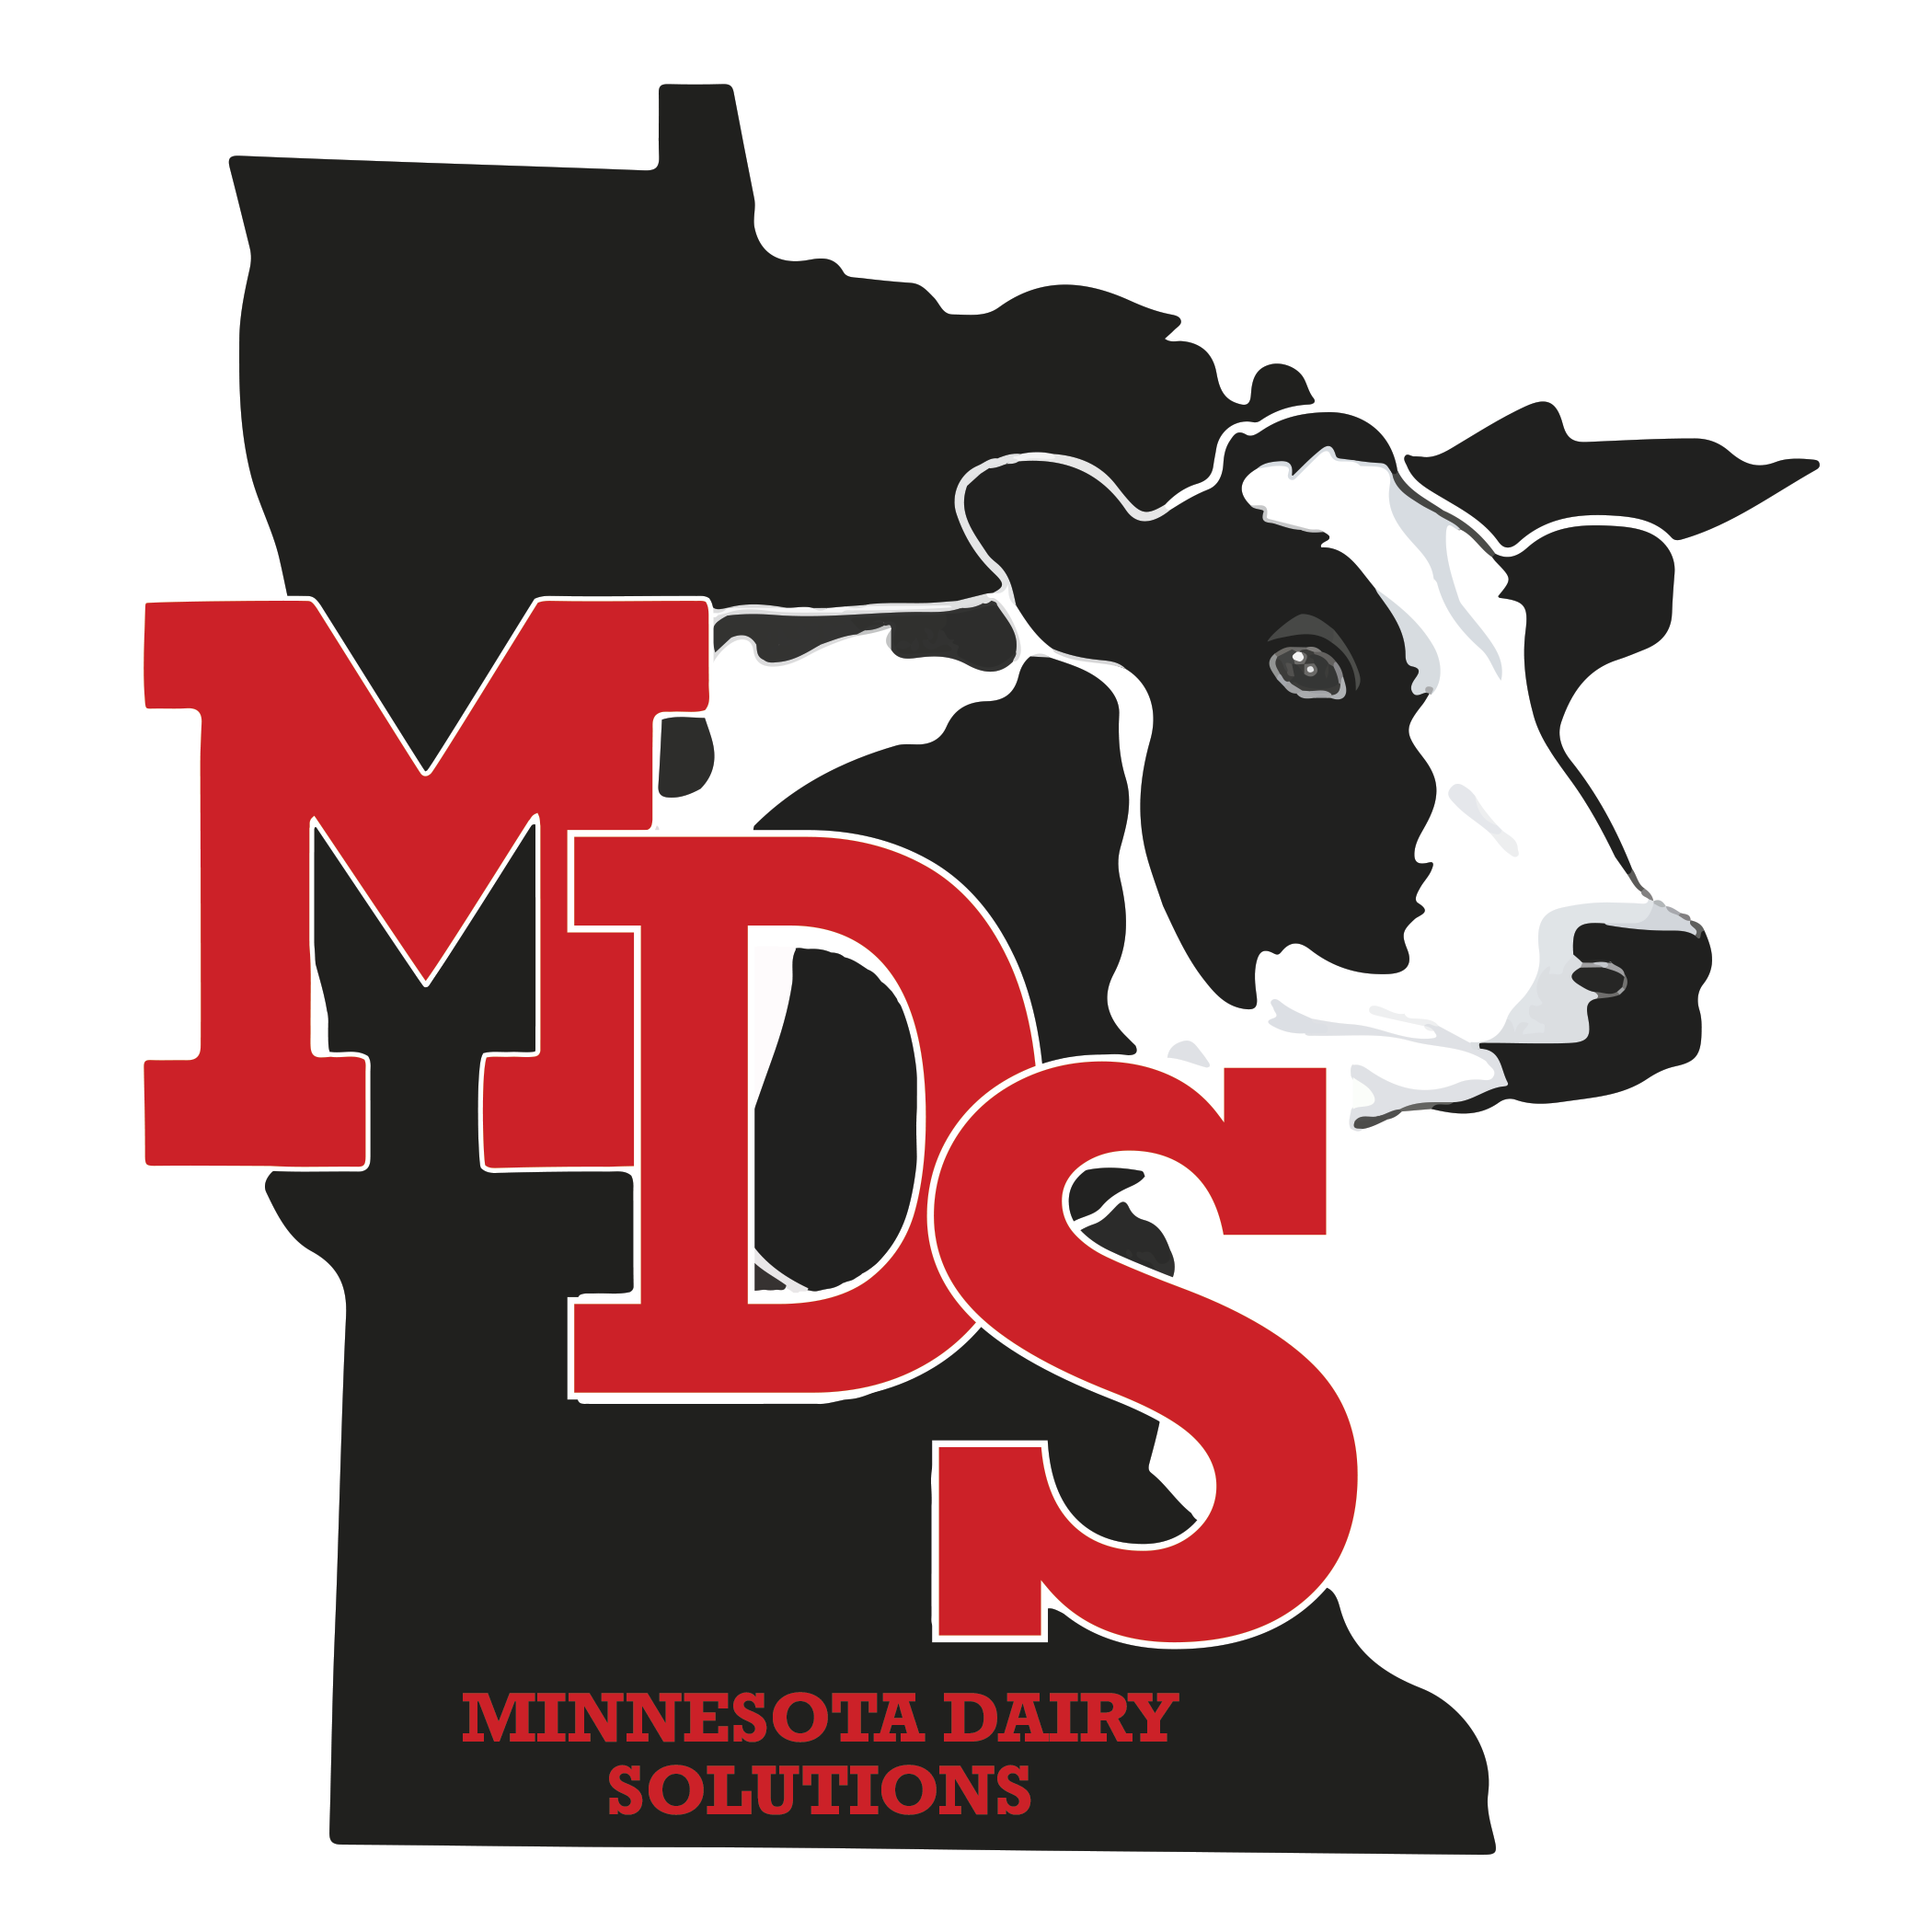 Minnesota Dairy Solutions